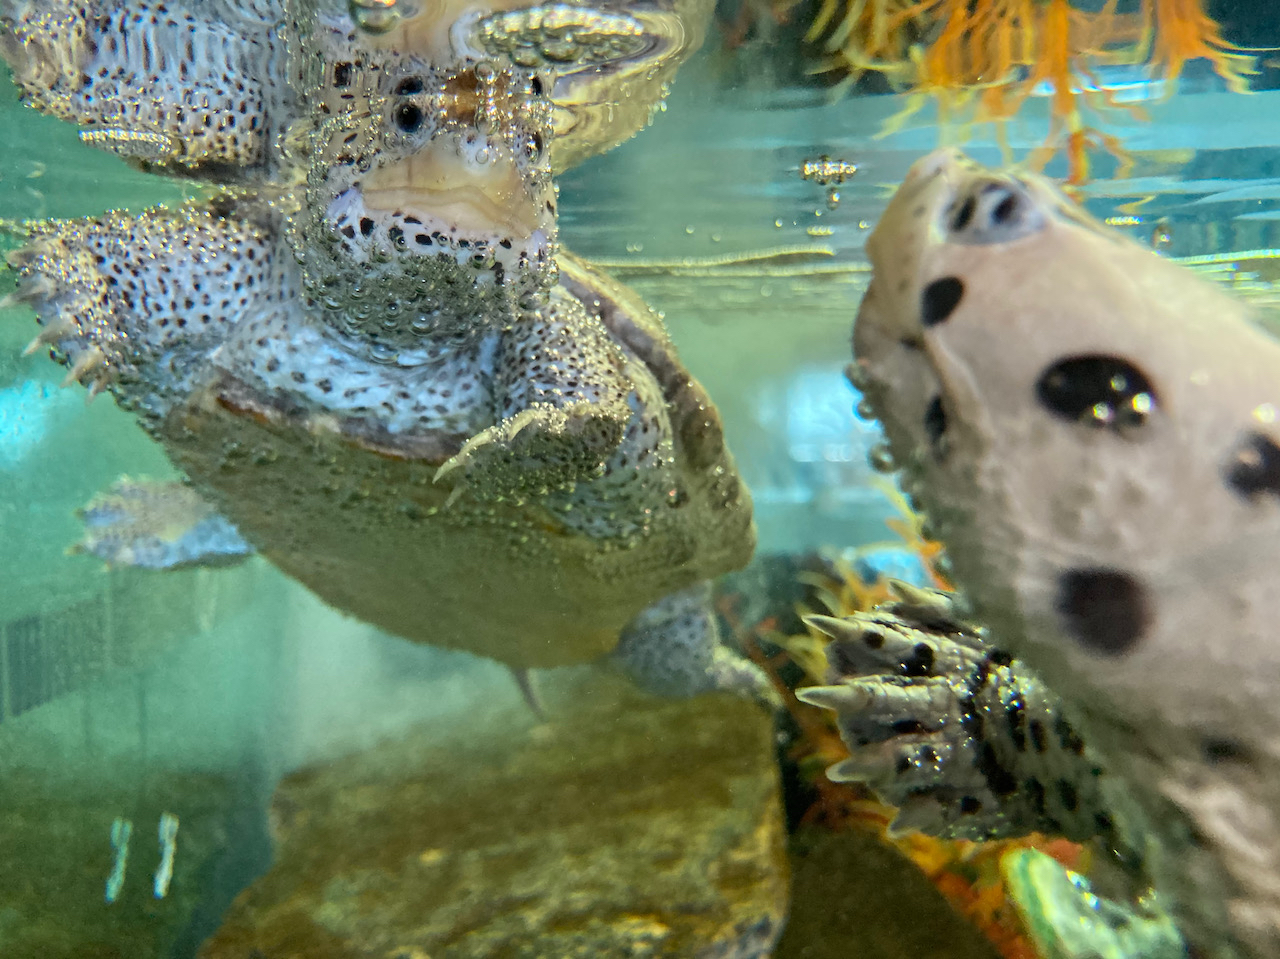 Two turtles swimming in aquarium.